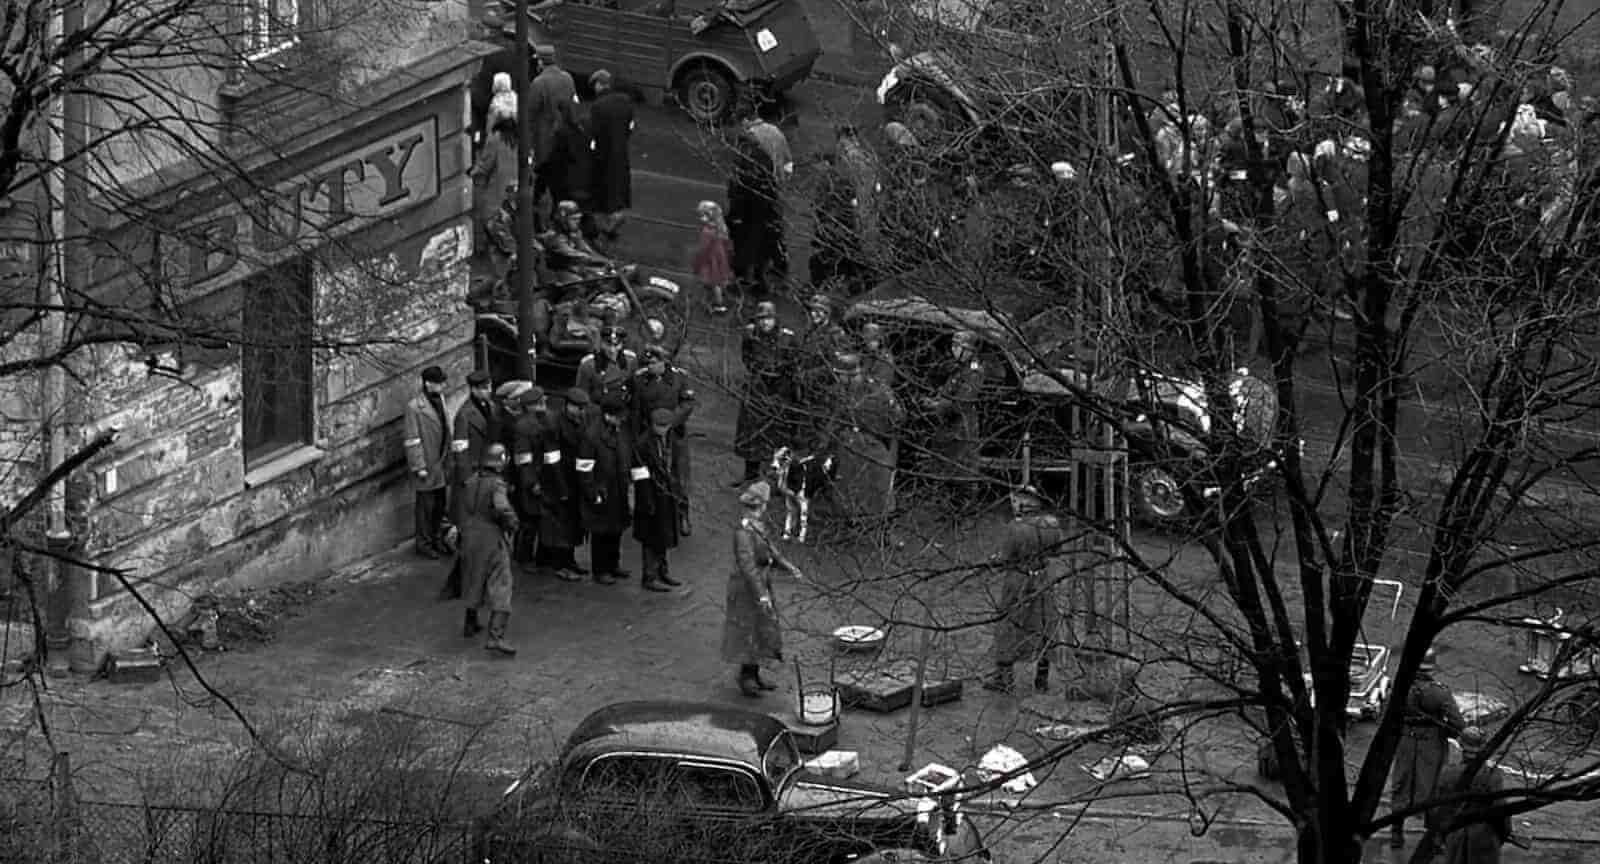 Wide Angle Shot - Camera Movements and Camera Angles - Schindlers List - 4